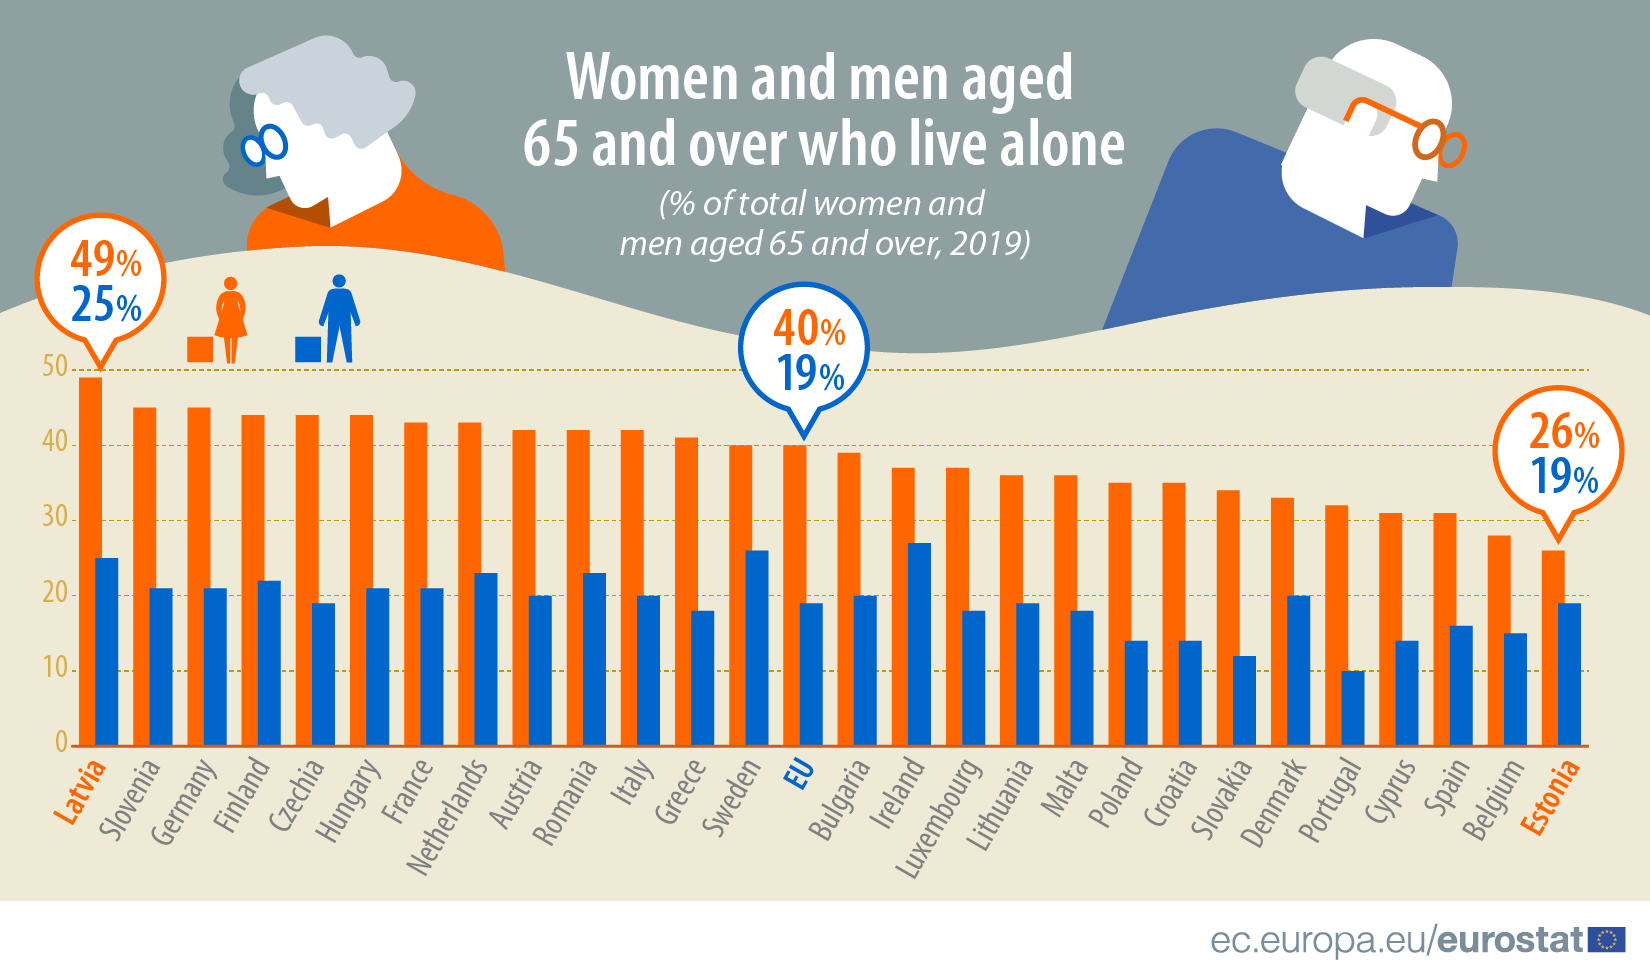 Women and men aged 65 and over who live alone